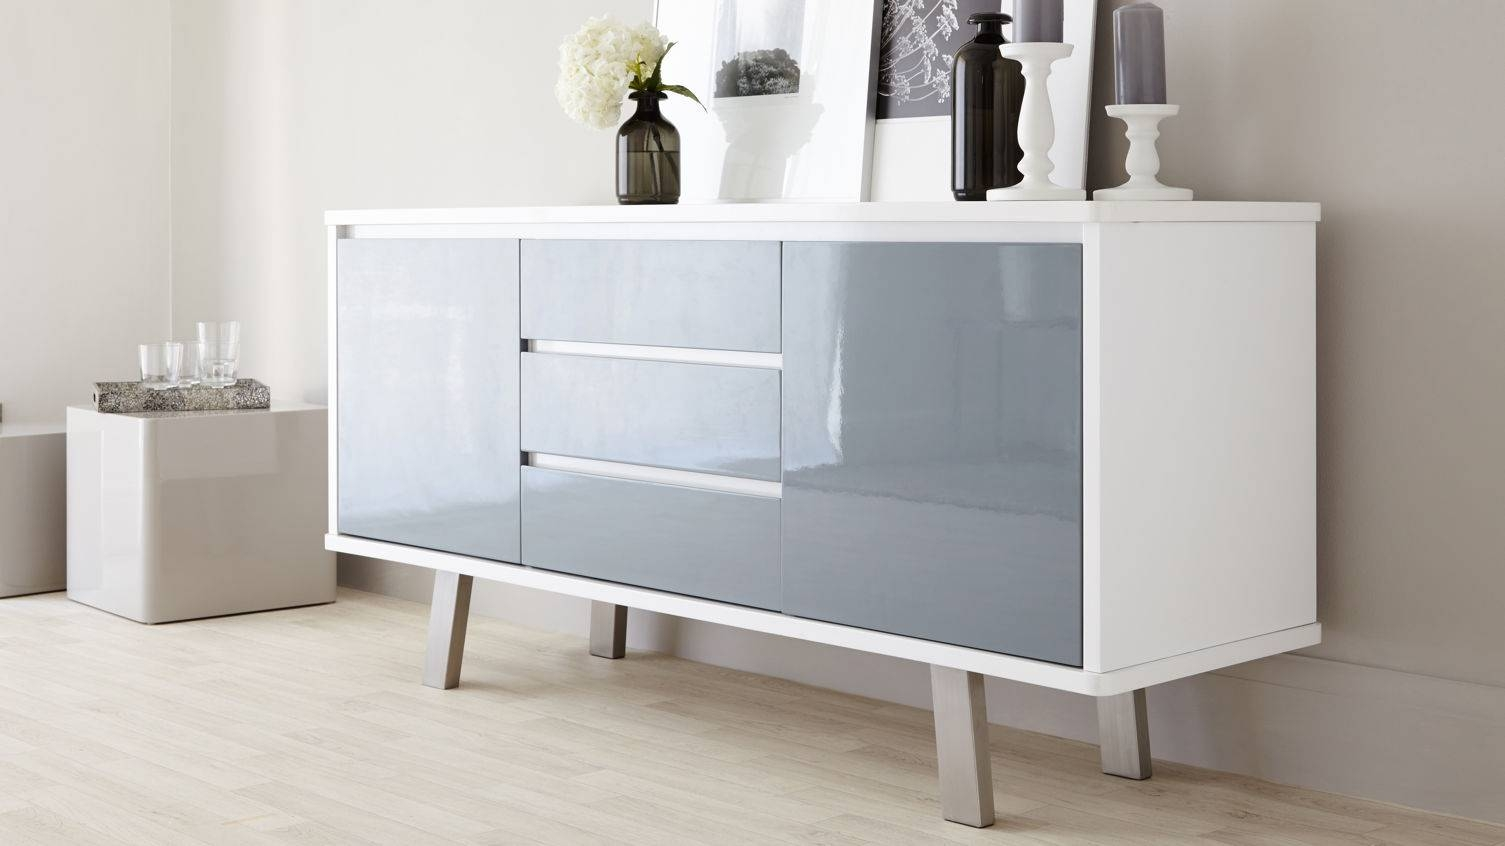 Furniture: Modern White And Grey Gloss Modern Sideboard With With Regard To White Sideboard Modern (View 7 of 20)